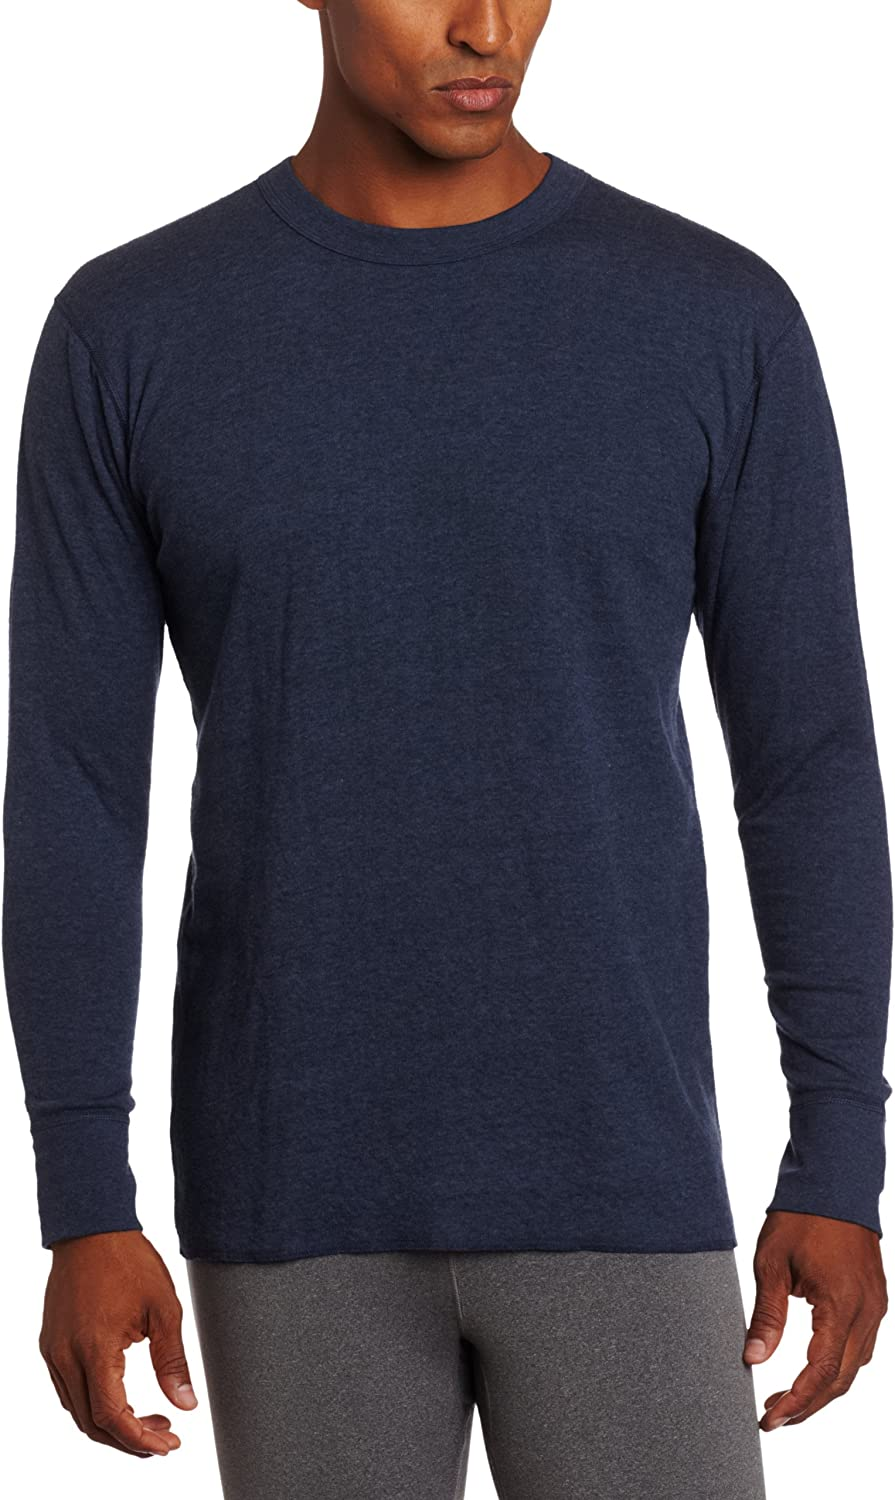 Duofold Men's Big-Tall Heavy Weight Plus Crew Thermal Top